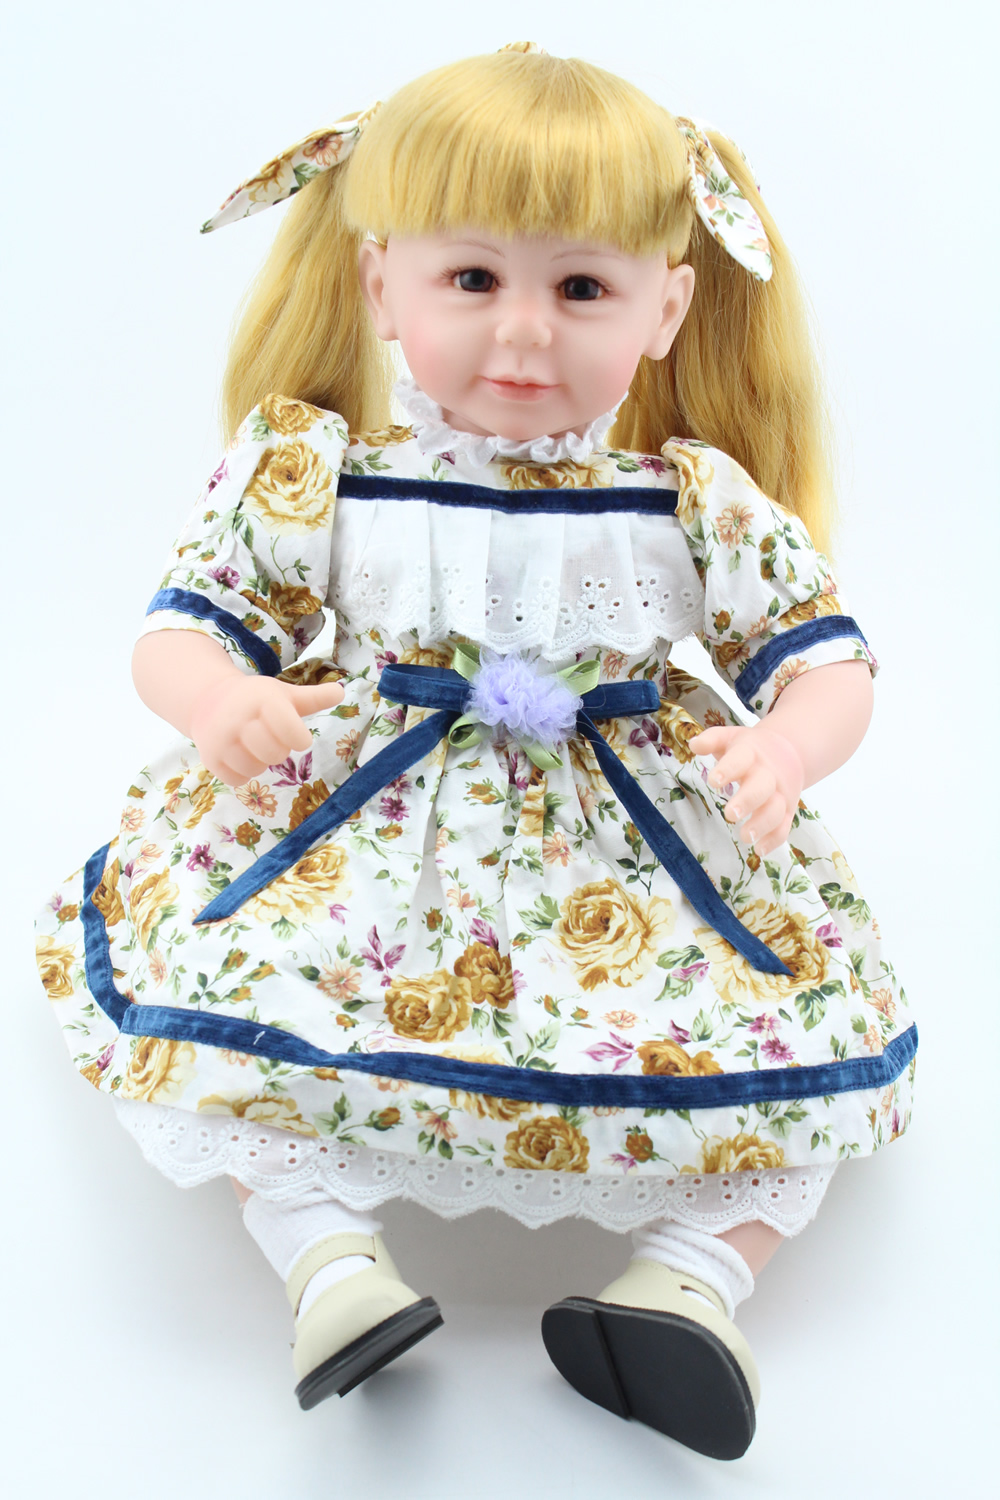 22 Inch Reborn Baby Dolls Realistic Siliceone Newborn Dolls Toddler Cute Adorable New Year Girl Gift Toy Hobbies Collection22 Inch Reborn Baby Dolls Realistic Siliceone Newborn Dolls Toddler Cute Adorable New Year Girl Gift Toy Hobbies Collection